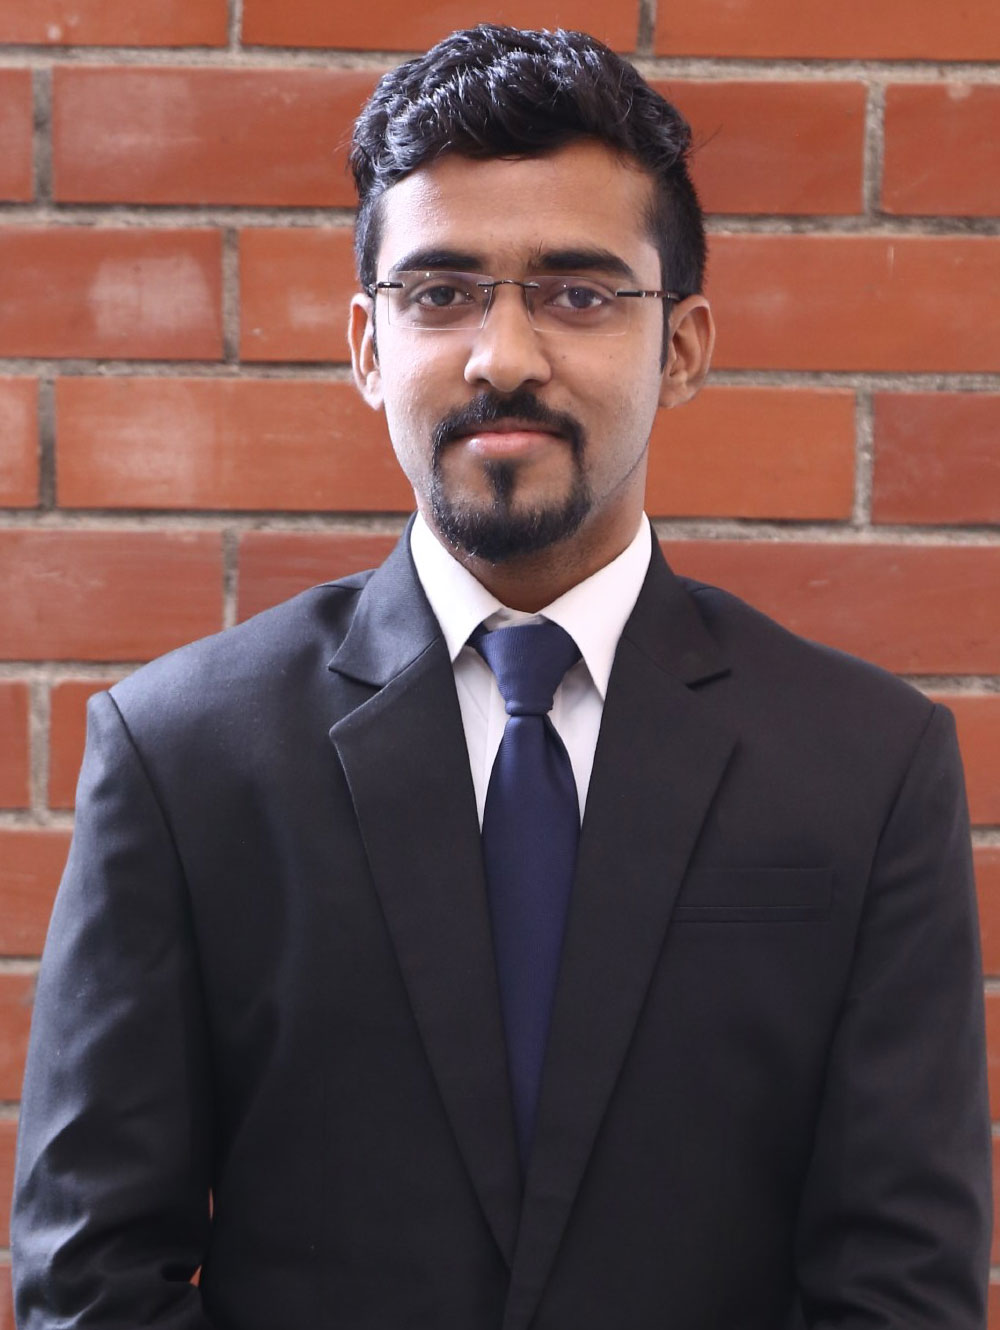 Girish done PGDM course at Top Management Colleges in Indore